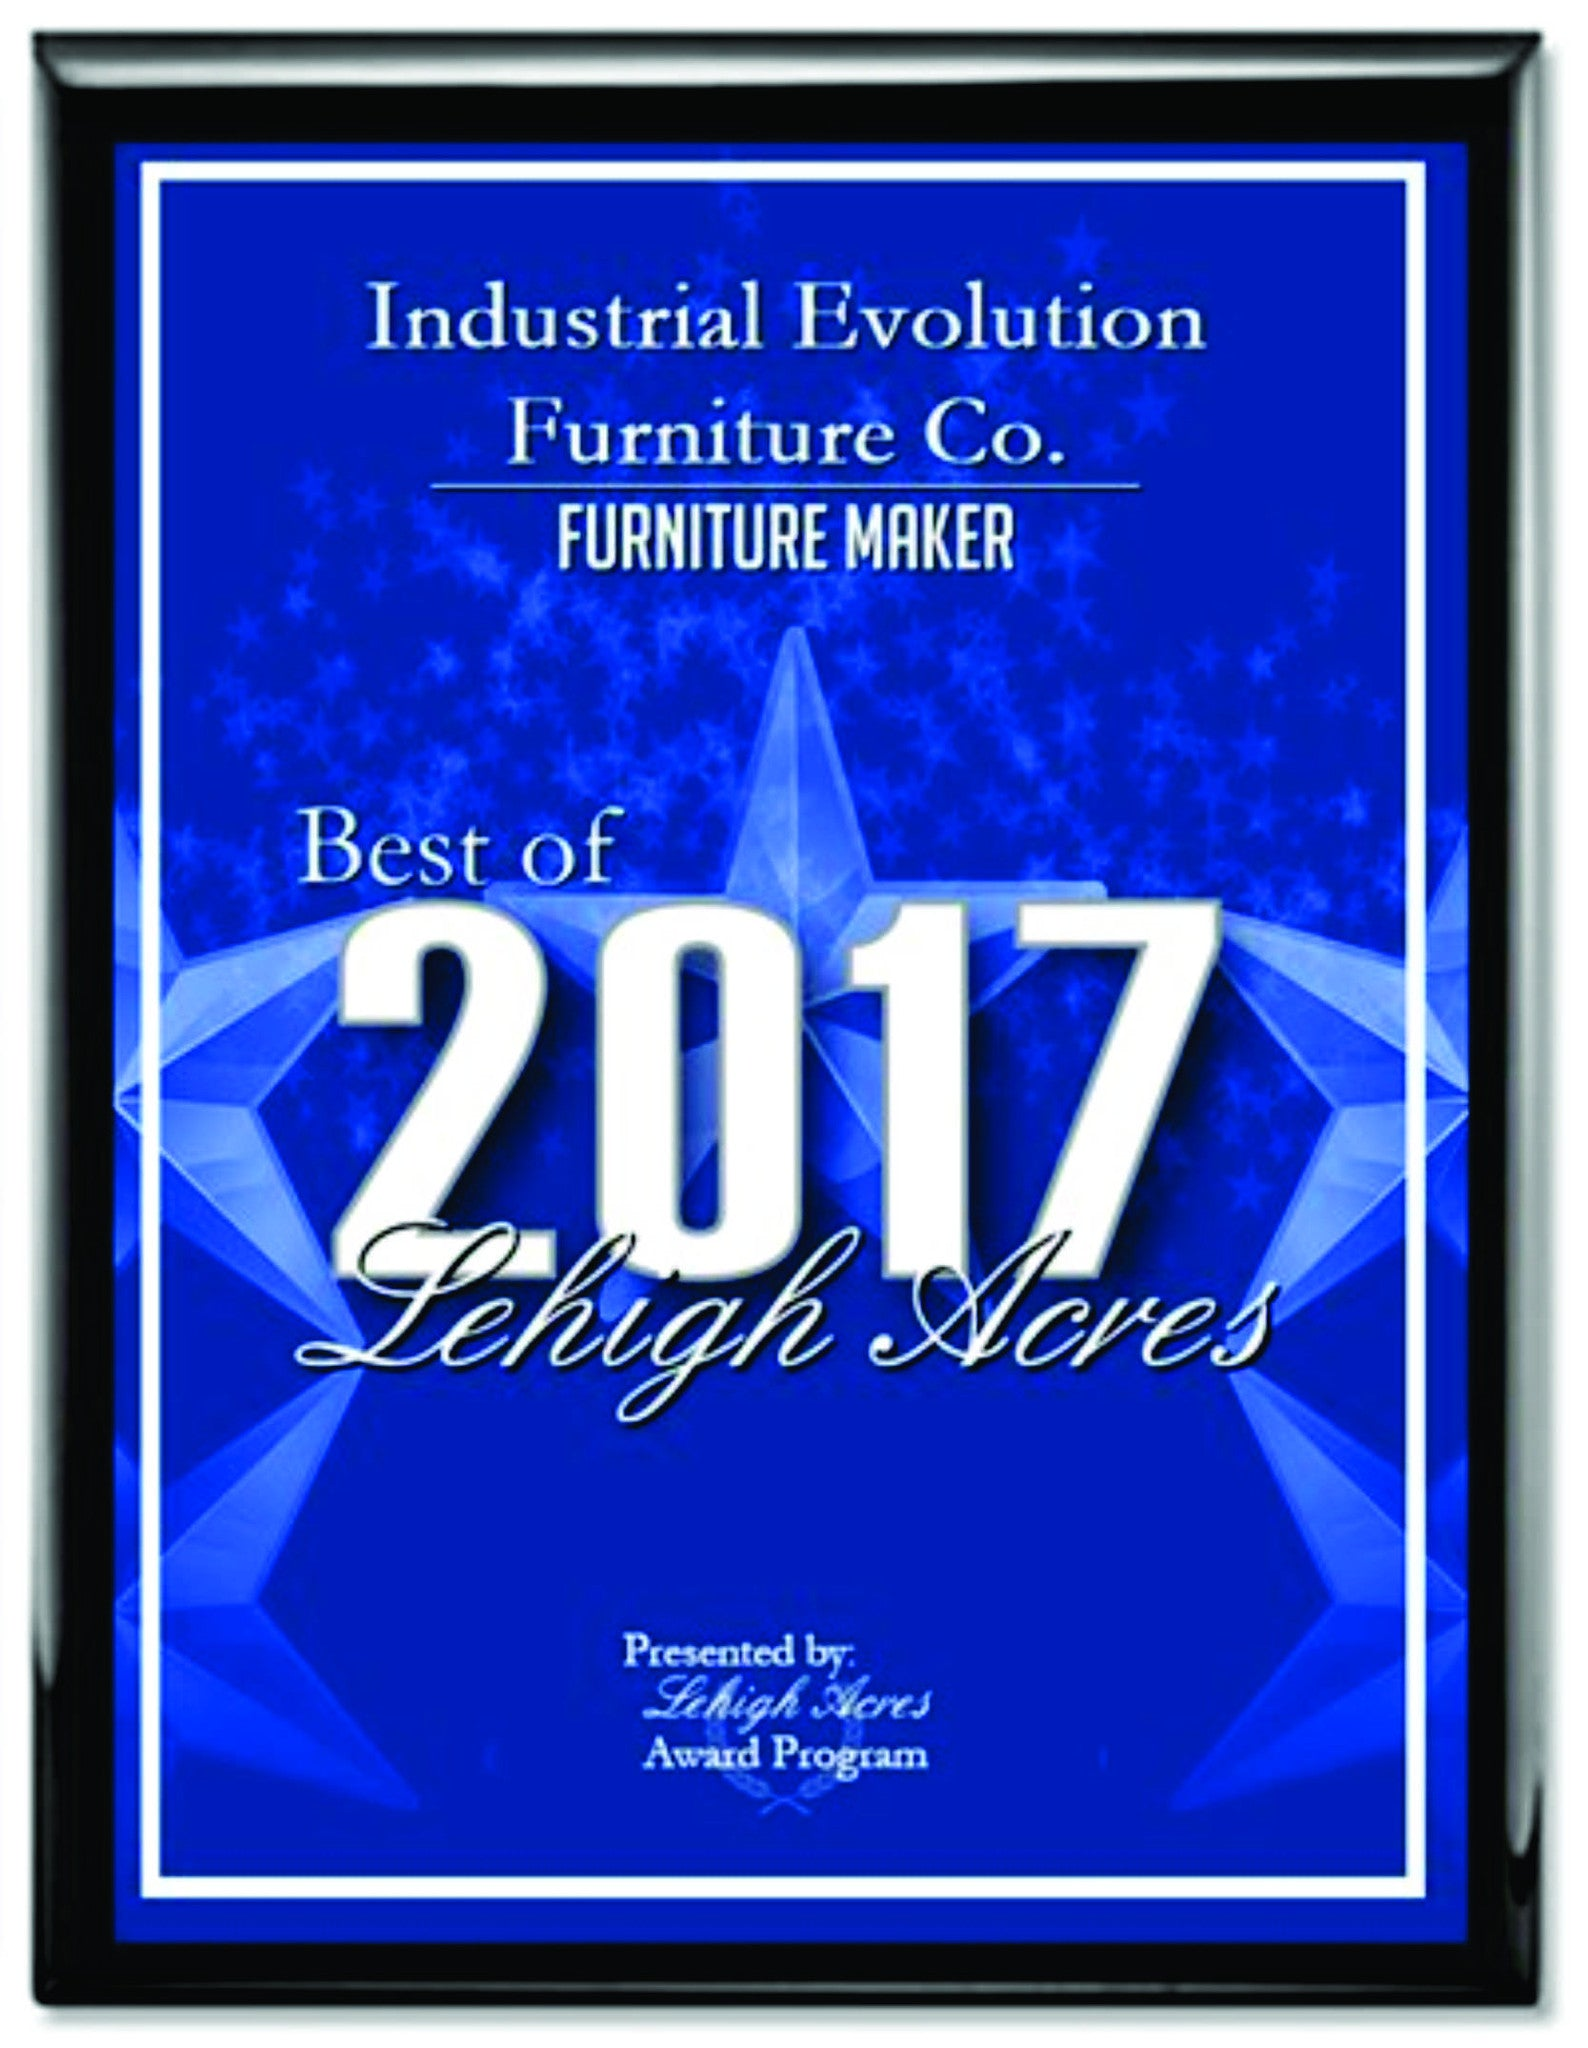 Voted BEST Furniture Maker again in 2017